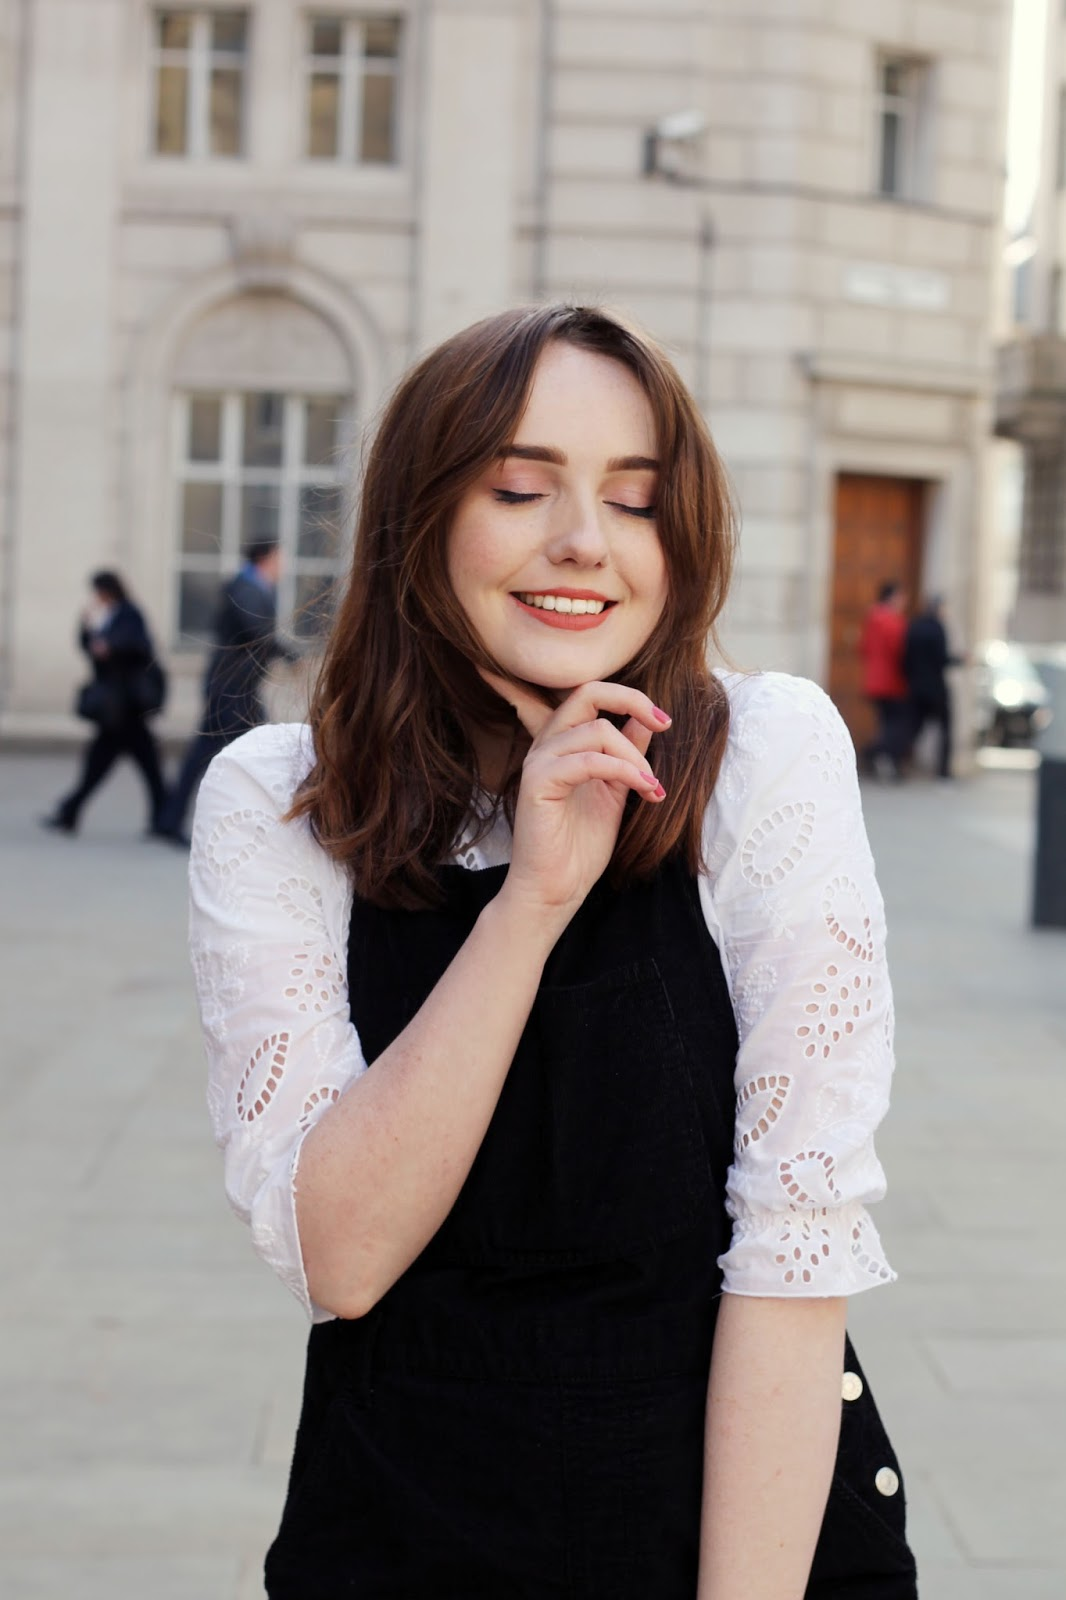 Liverpool blogger wearing peach coral pixi beauty lipstick, white blouse and black cord dungarees